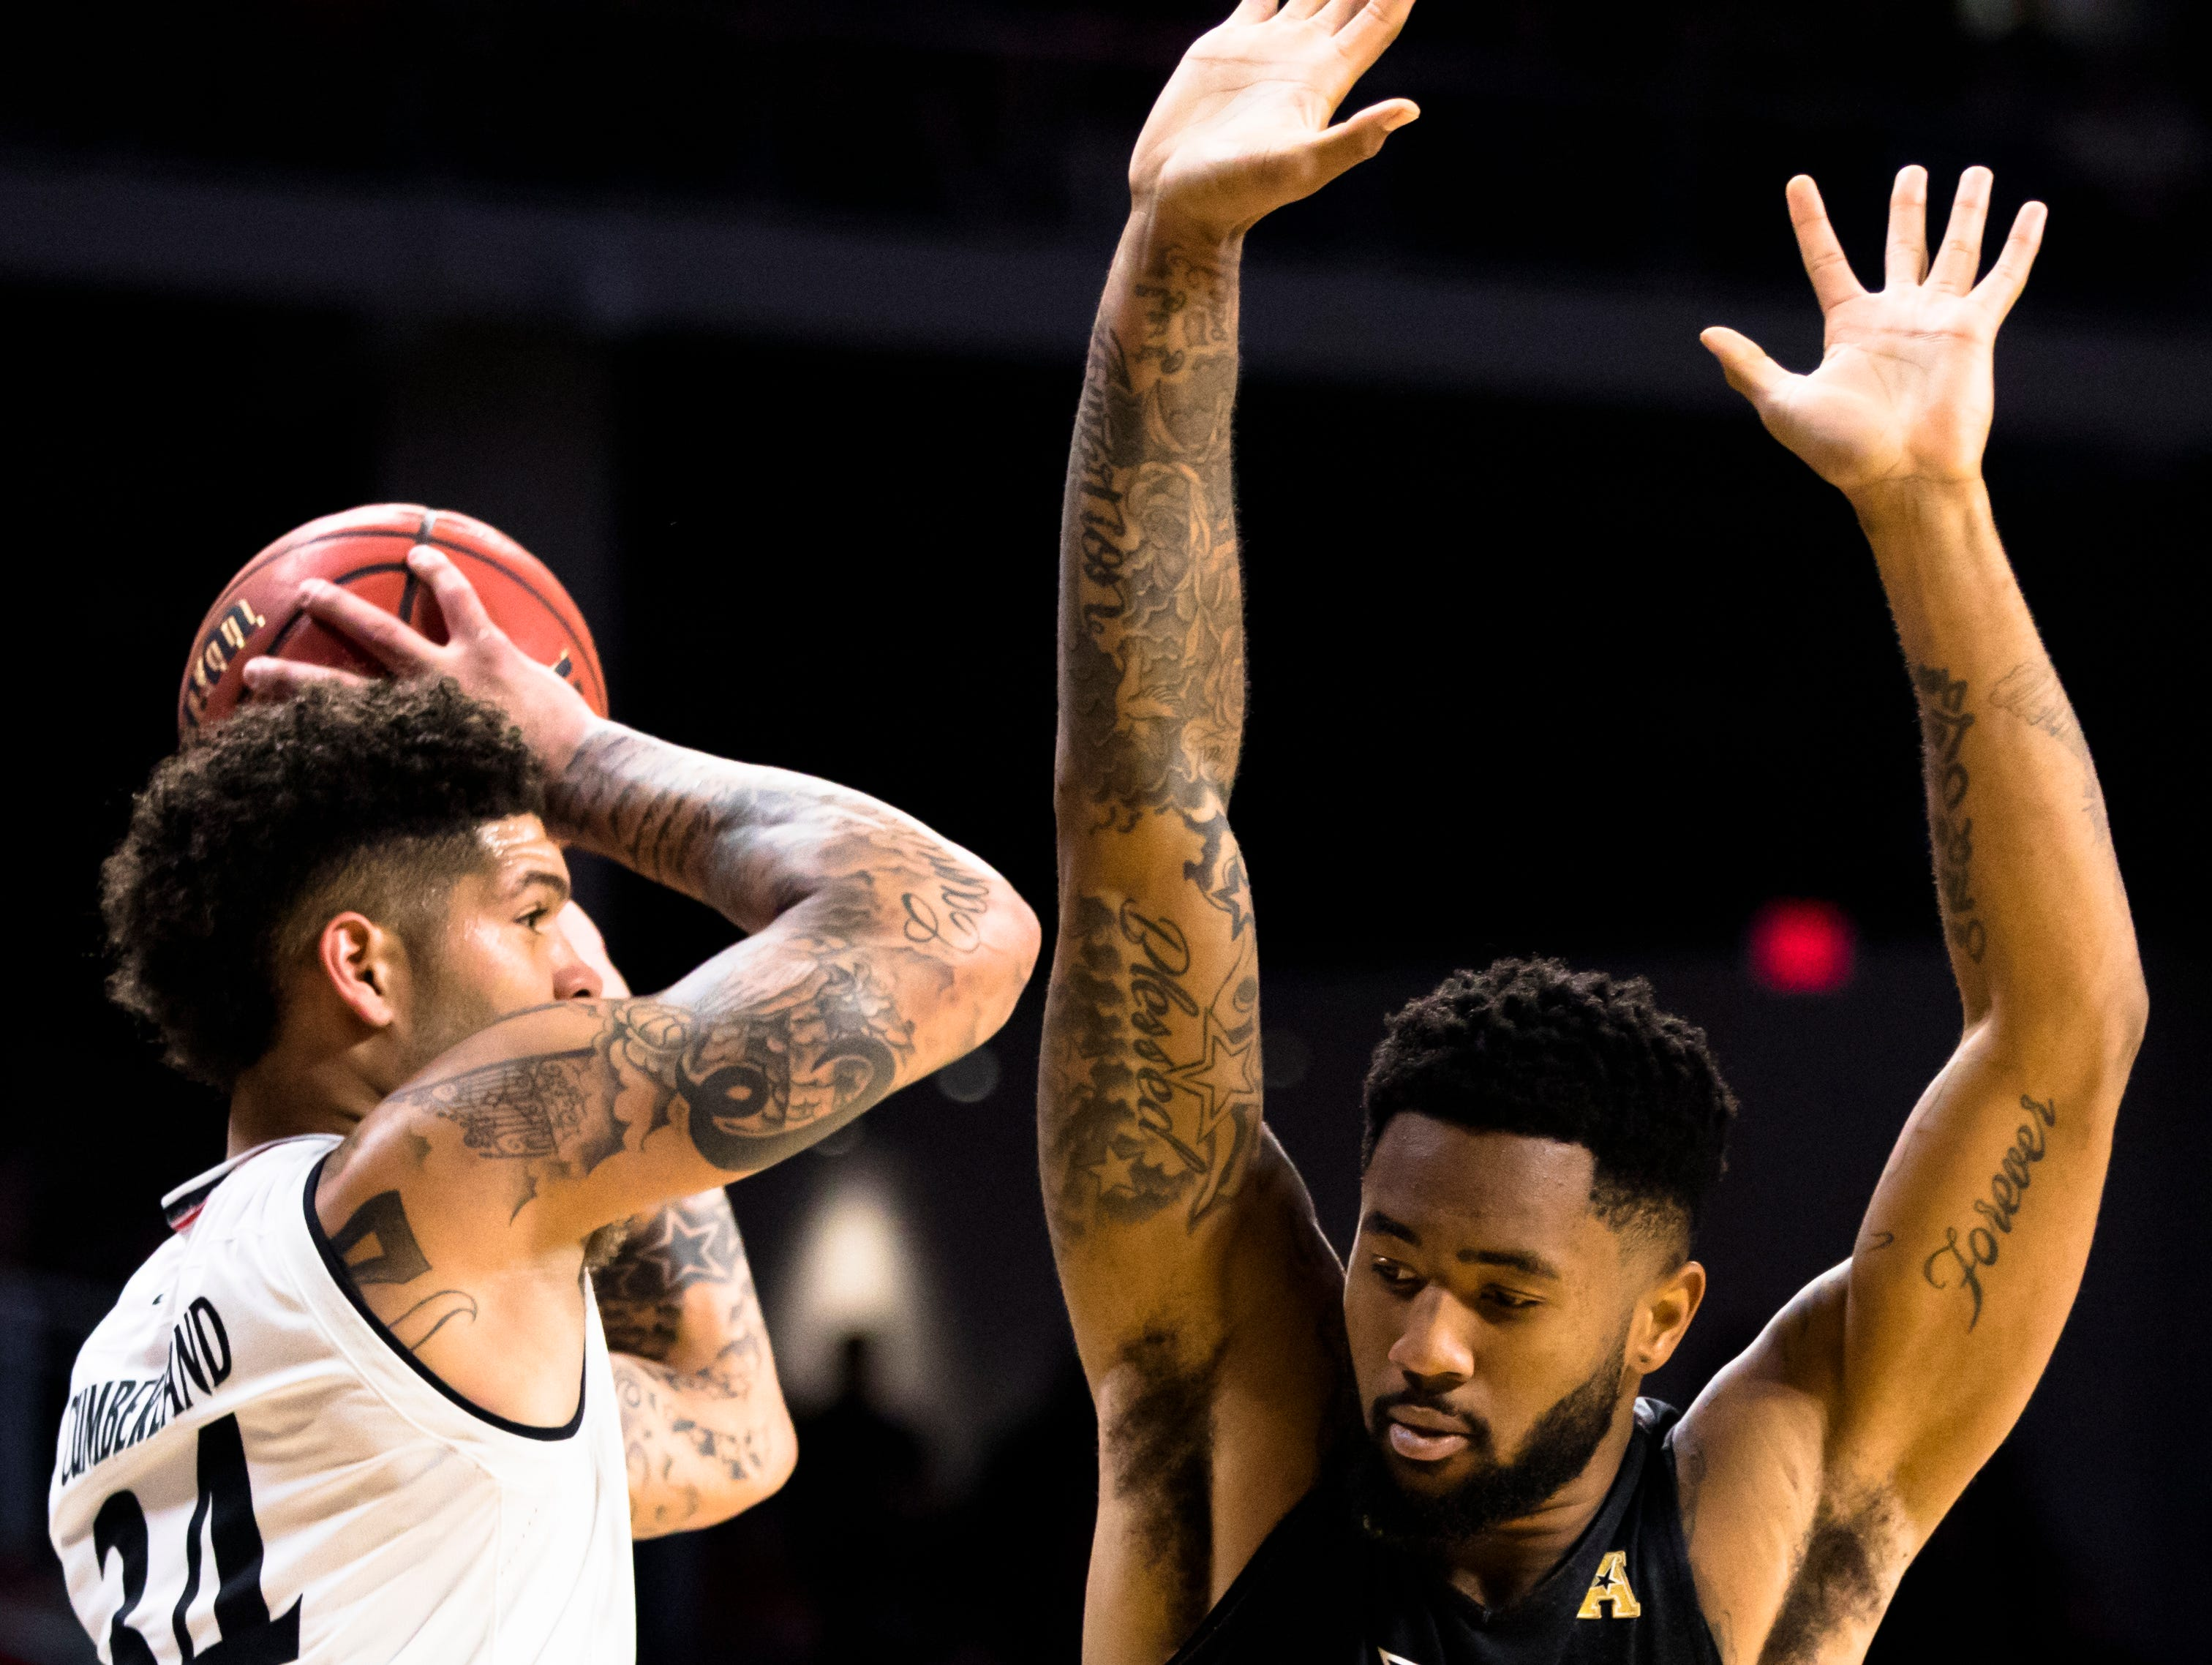 Cincinnati Bearcats guard Jarron Cumberland (34) passes as UCF Knights guard Dayon Griffin (10) guards him in the first half of the NCAA men's basketball game between Cincinnati Bearcats and UCF Knights on Thursday, Feb. 21, 2019, at Fifth Third Arena in Cincinnati.